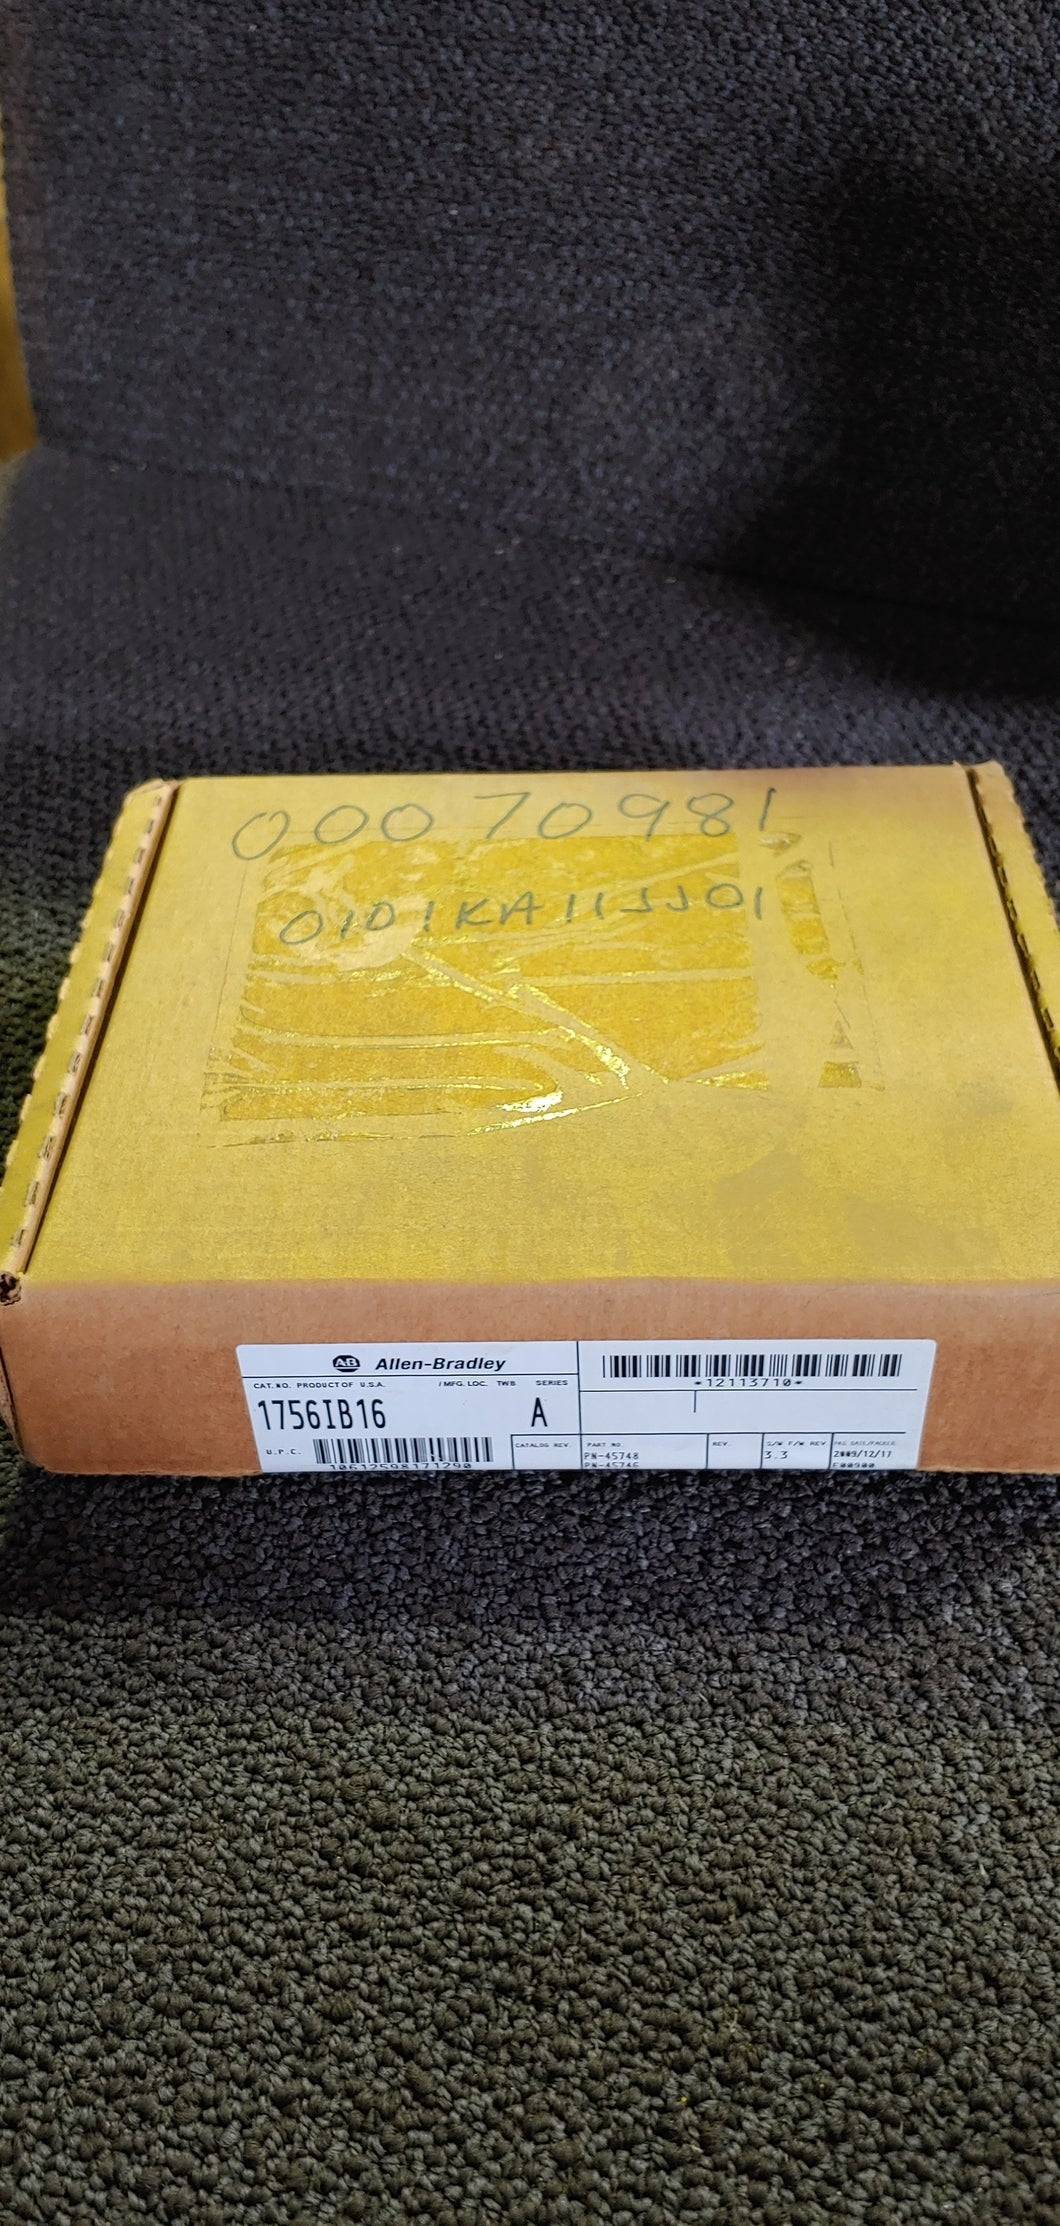 Allen Bradley 1756IB16 Series A (S/W F/W REV 3.3) New Factory Sealed